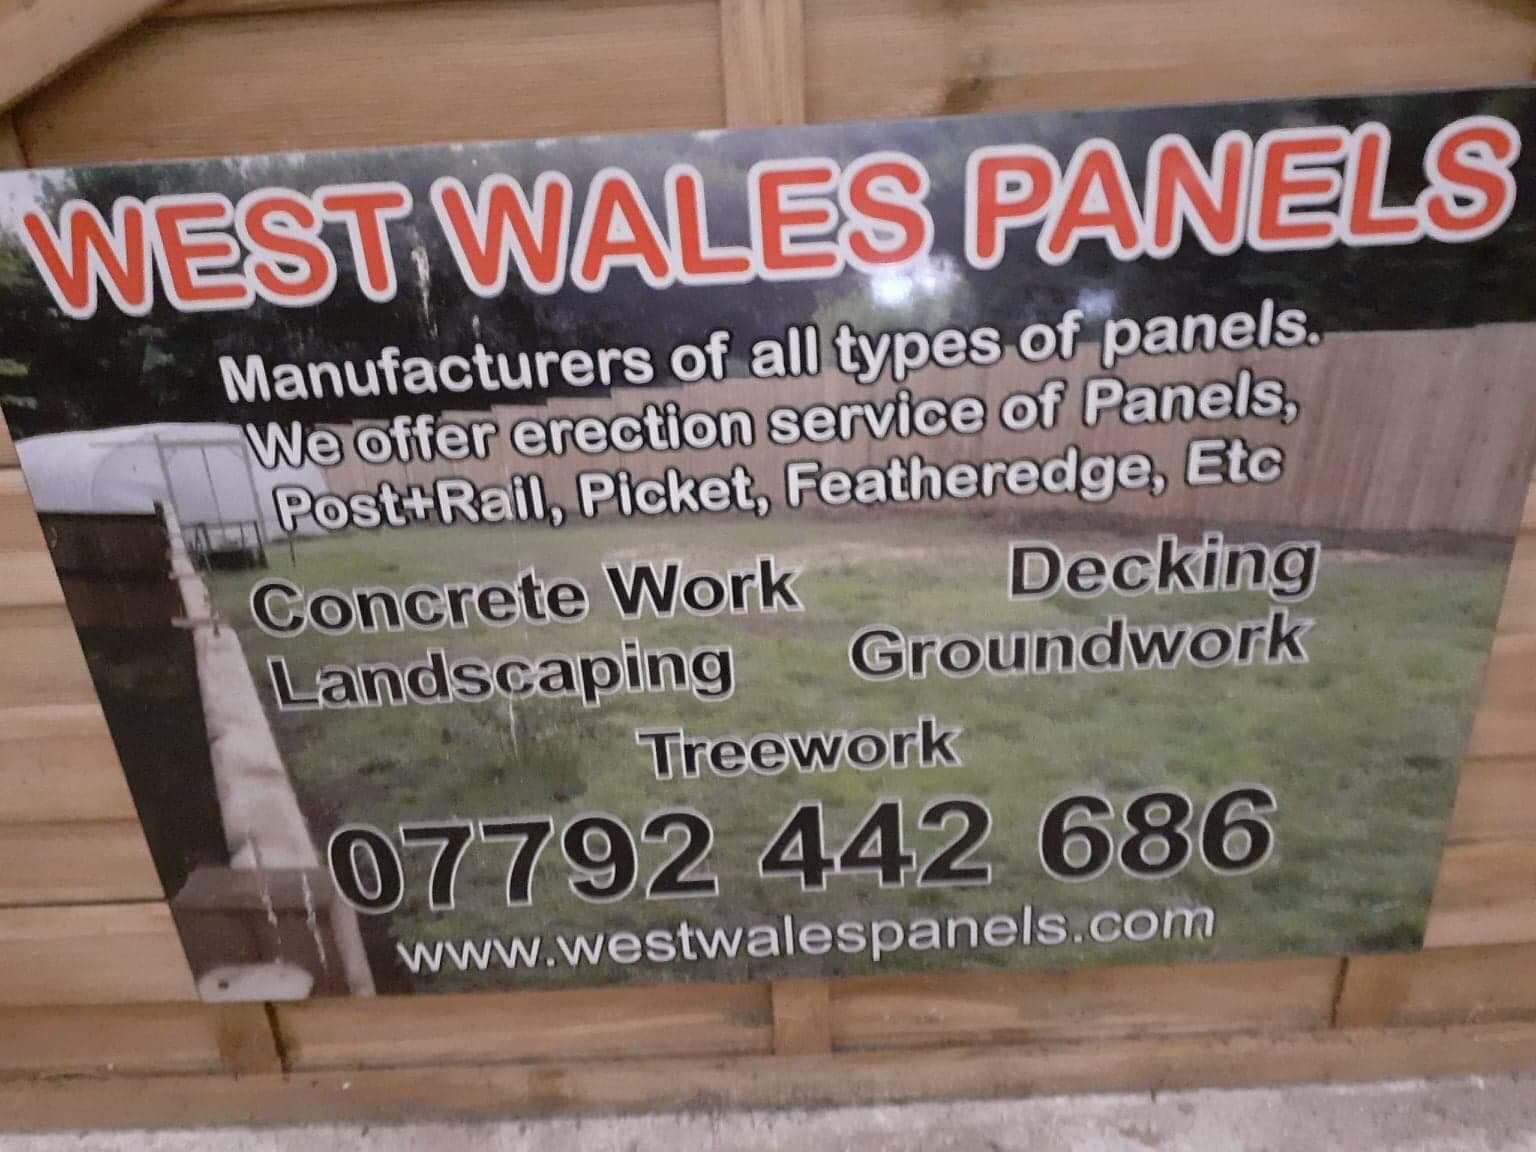 West Wales Panel information card.